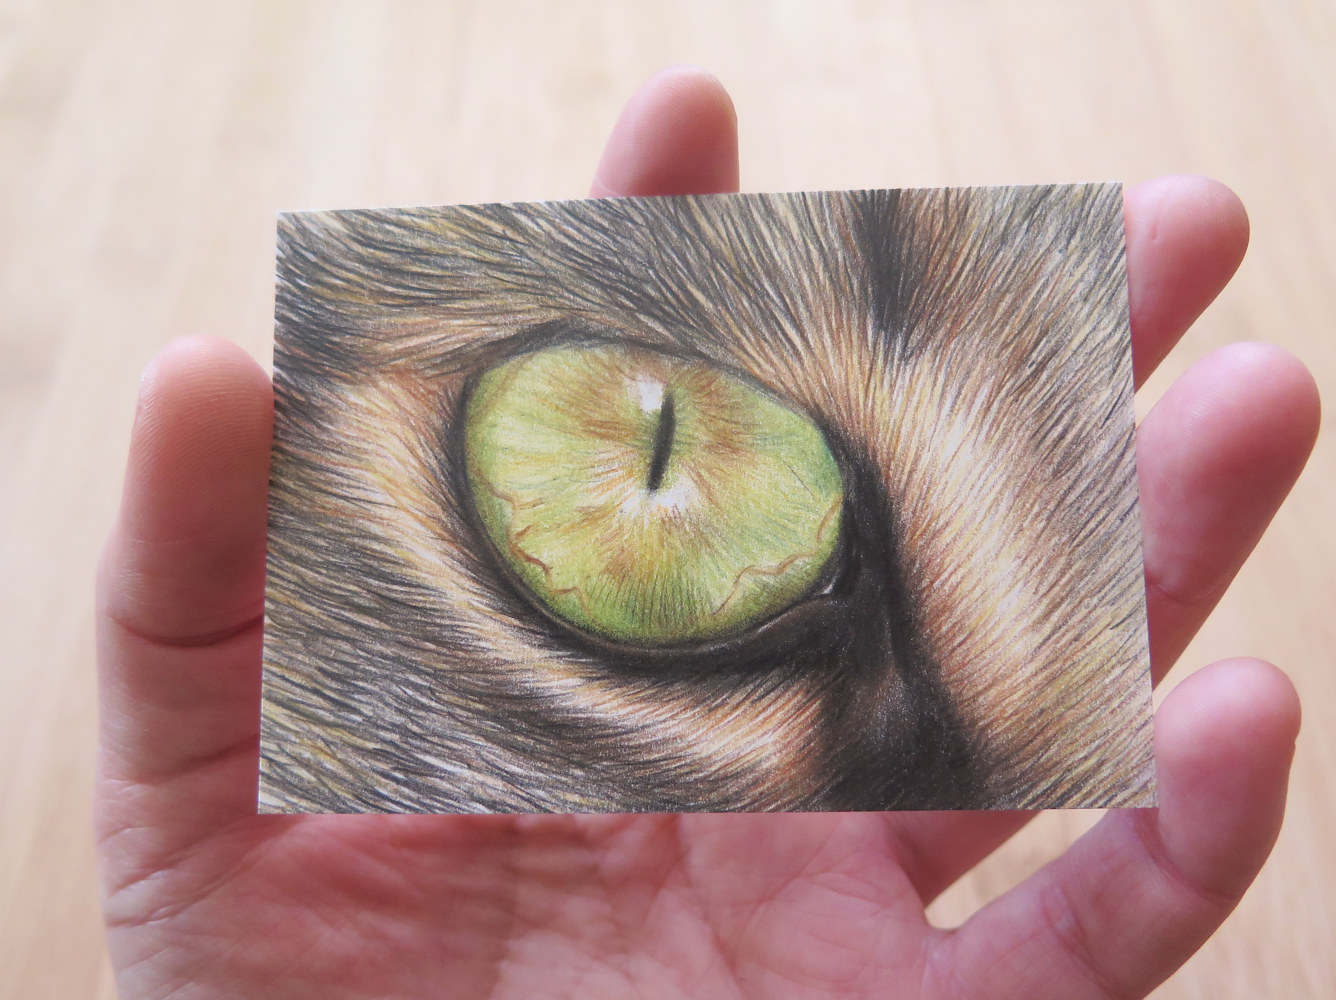 Dessin miniature ACEO - Chat aux yeux verts 2 by Genevieve Desy